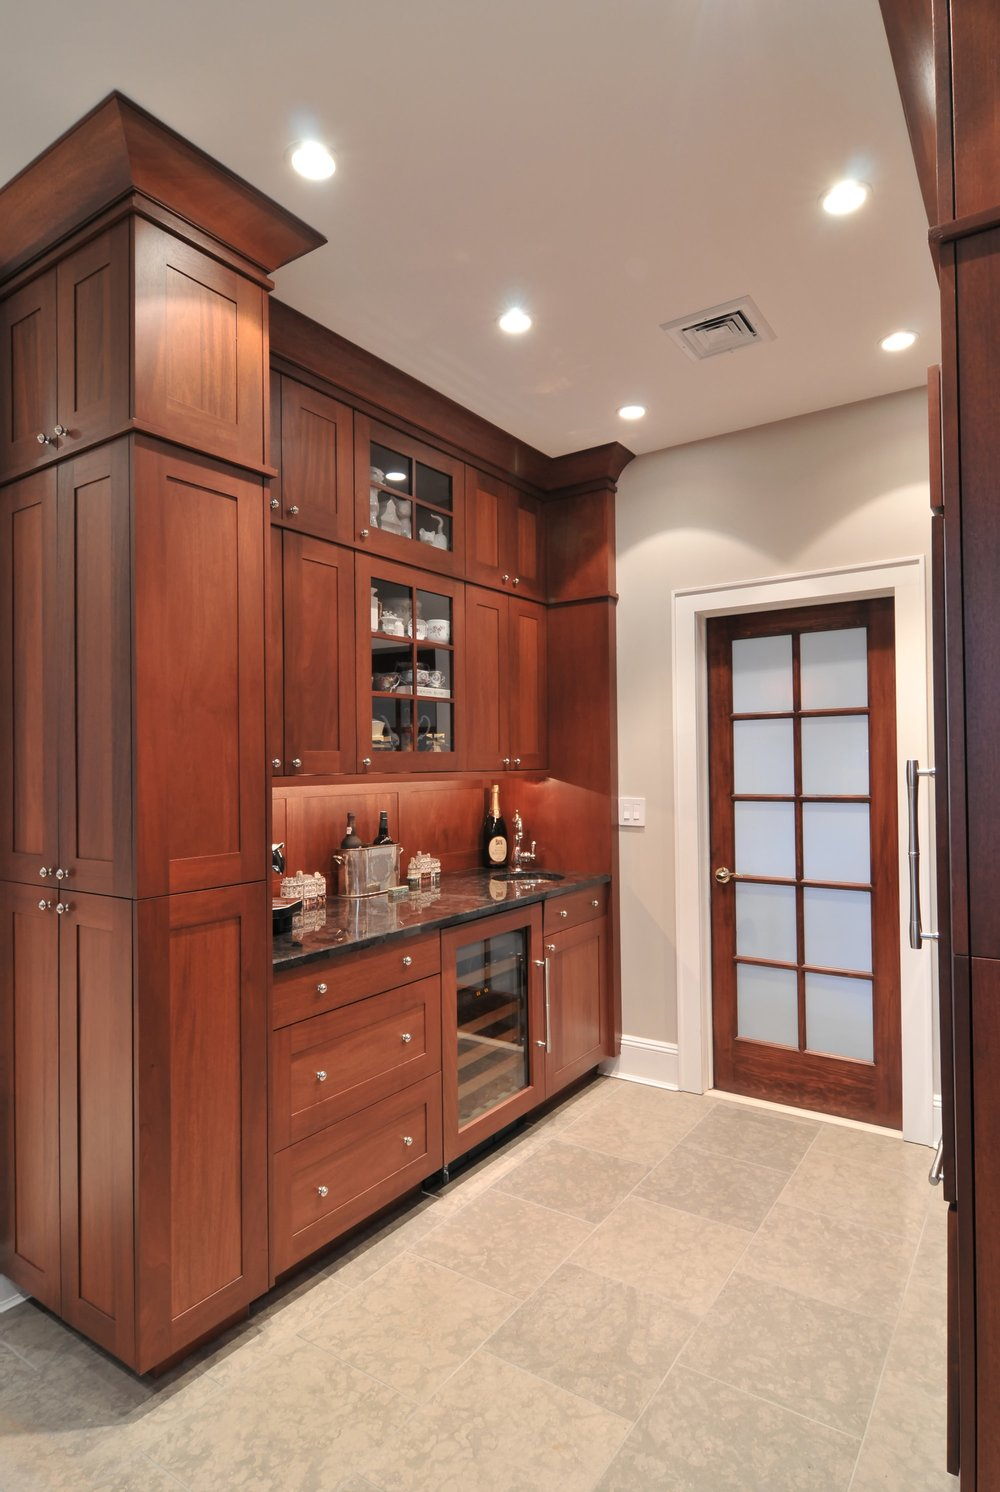 Transitional style kitchen with wine storage